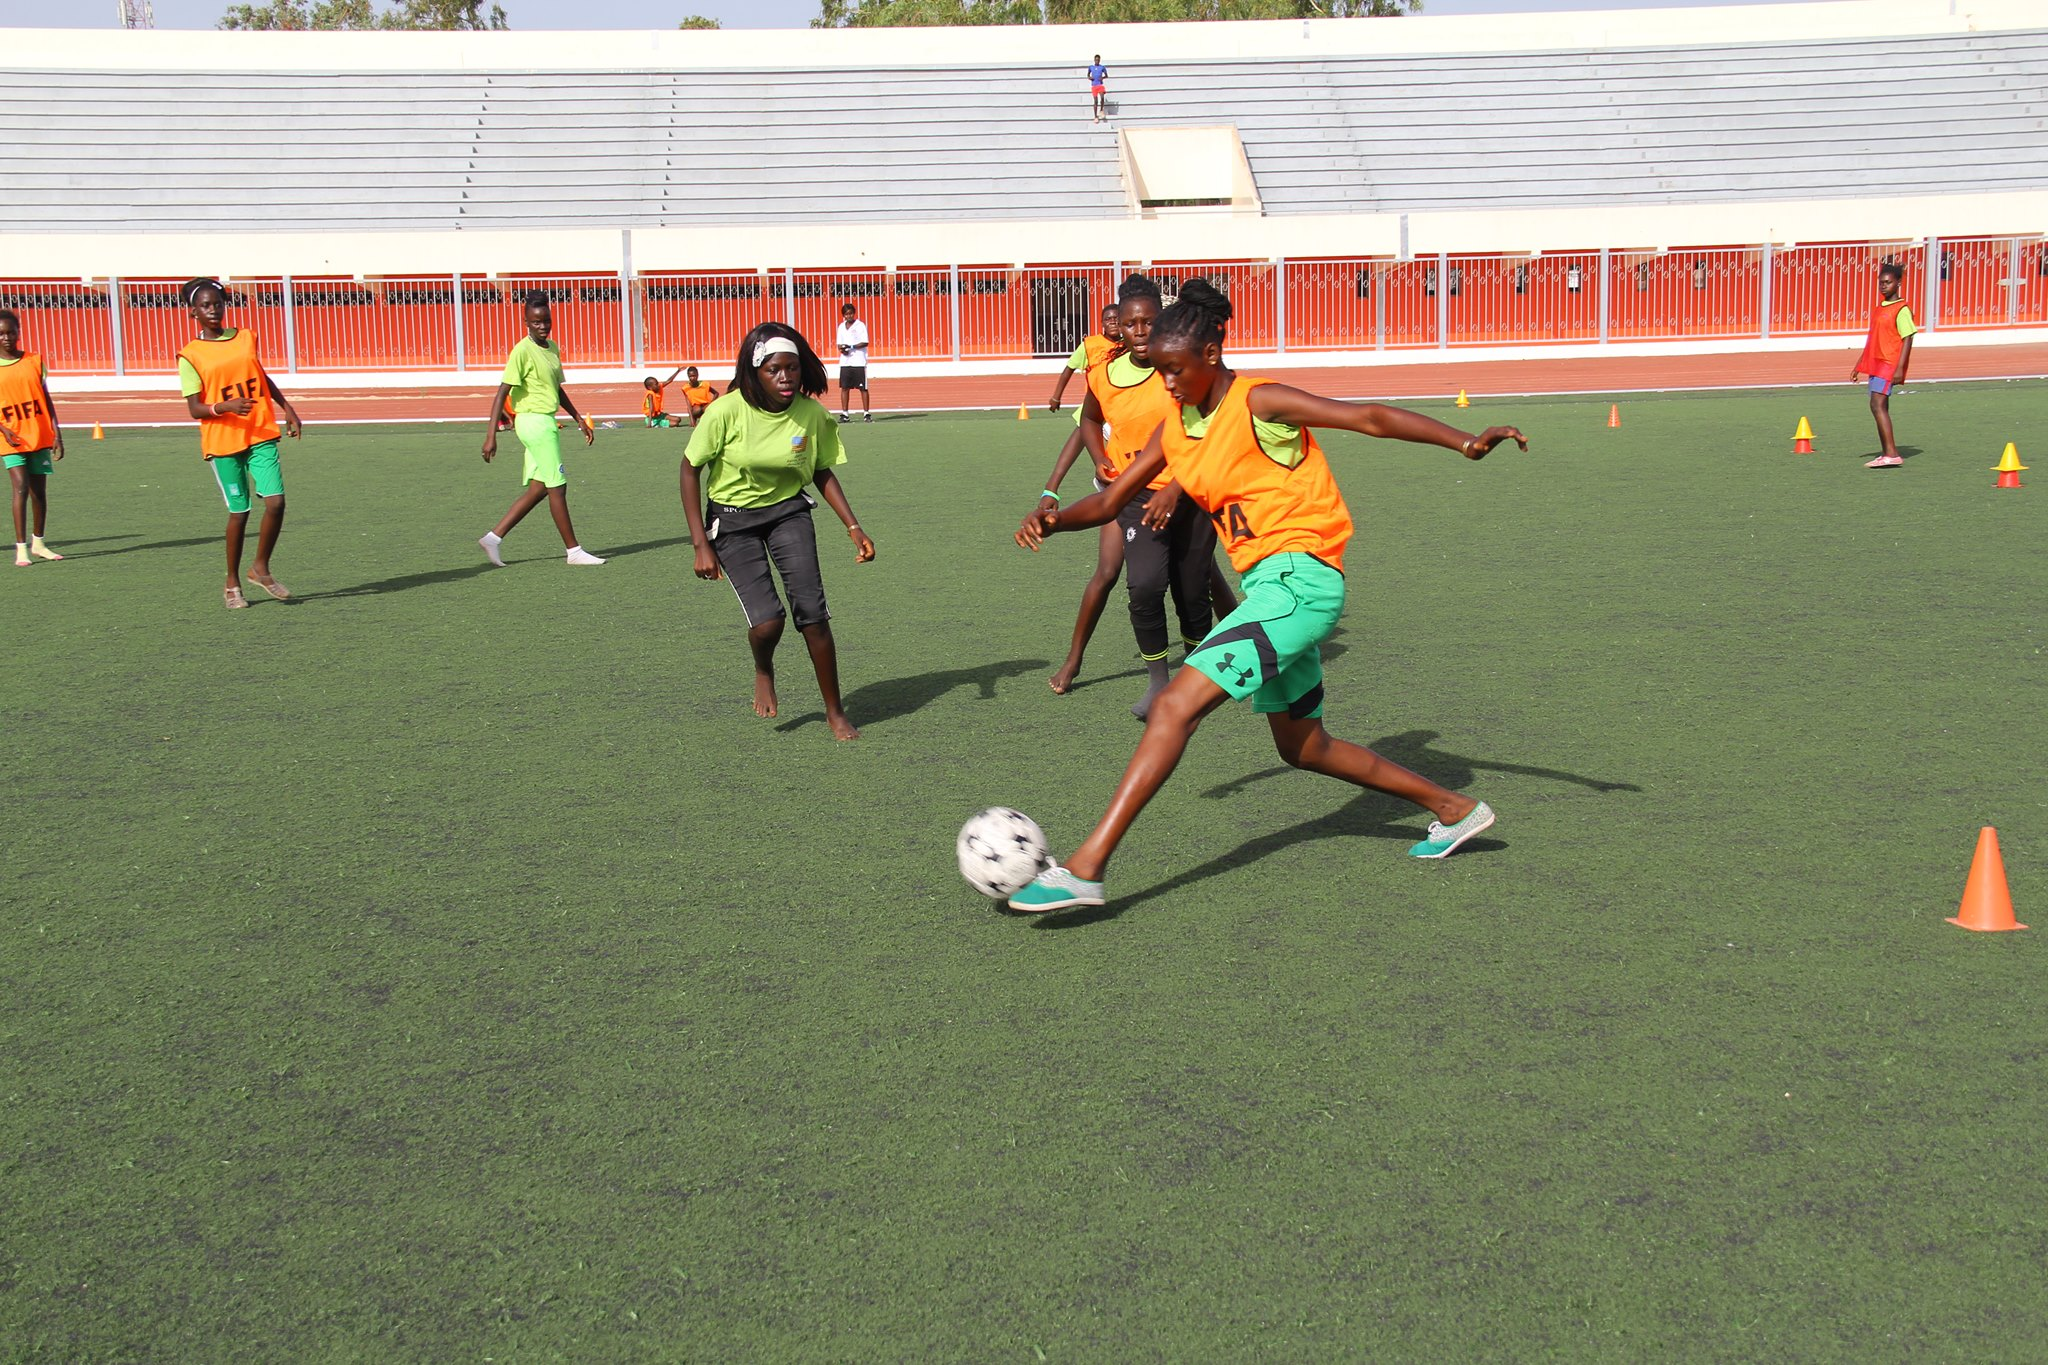 Sports Envoys and former U.S. Women's National Team members, Zola Solamente and Staci Wilson, lead soccer clinics for youth in Senegal. 2016.